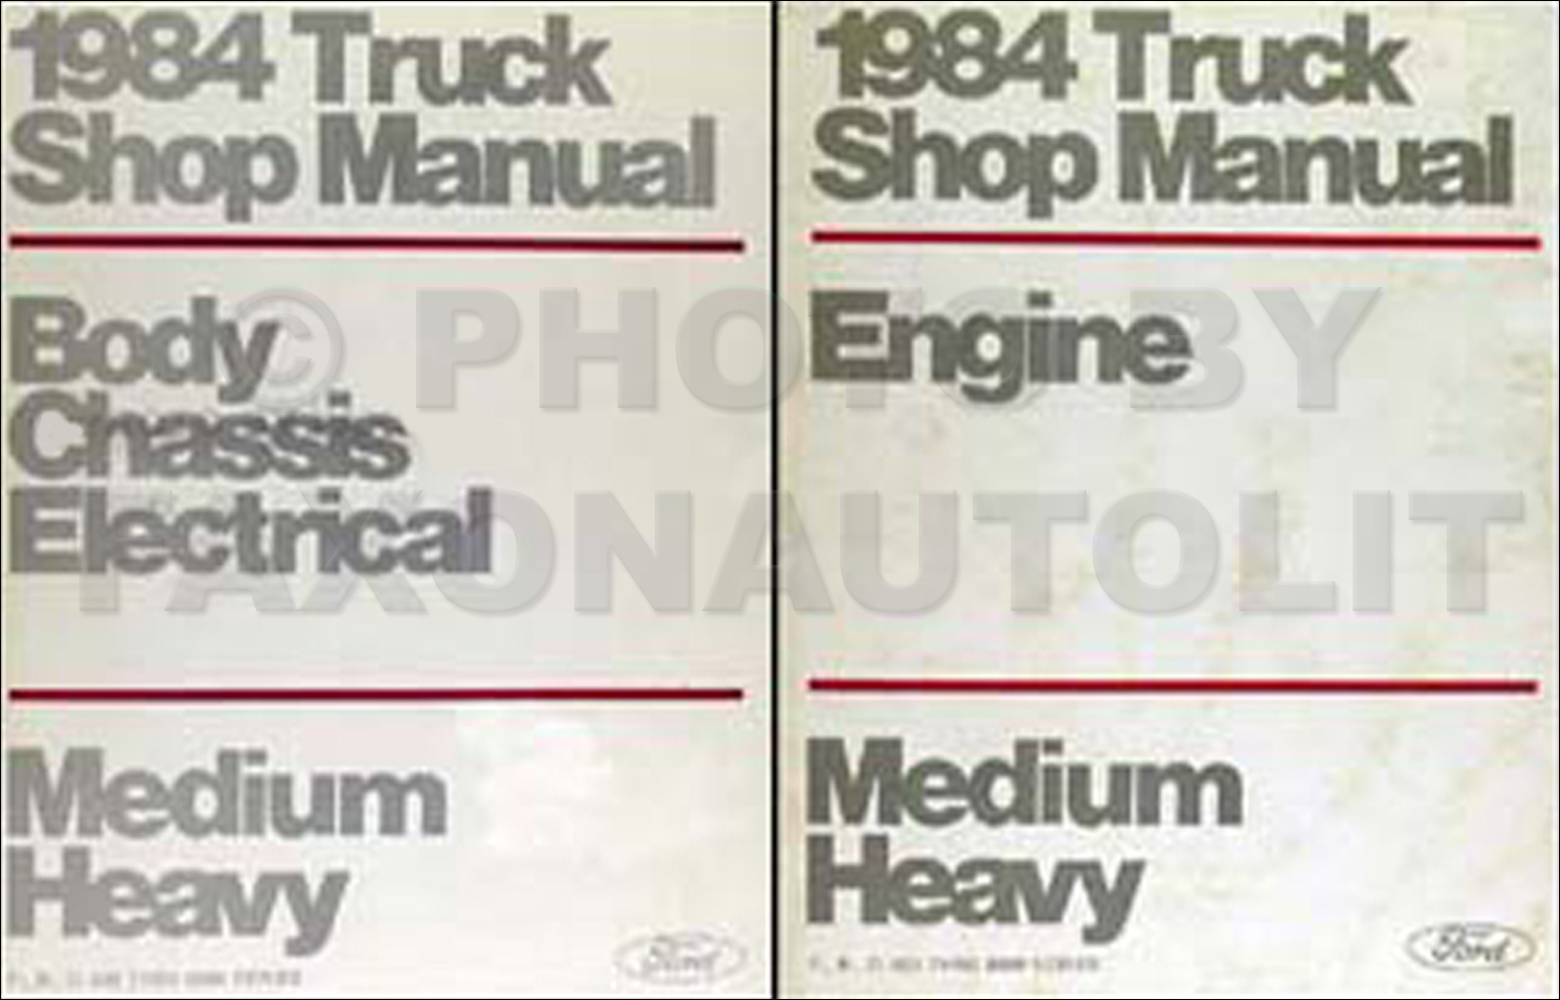 Search 1986 Ford Escort Body Electrical System Diagram 1984 F B C 600 8000 Medium Heavy Truck Repair Shop Manual Set Original